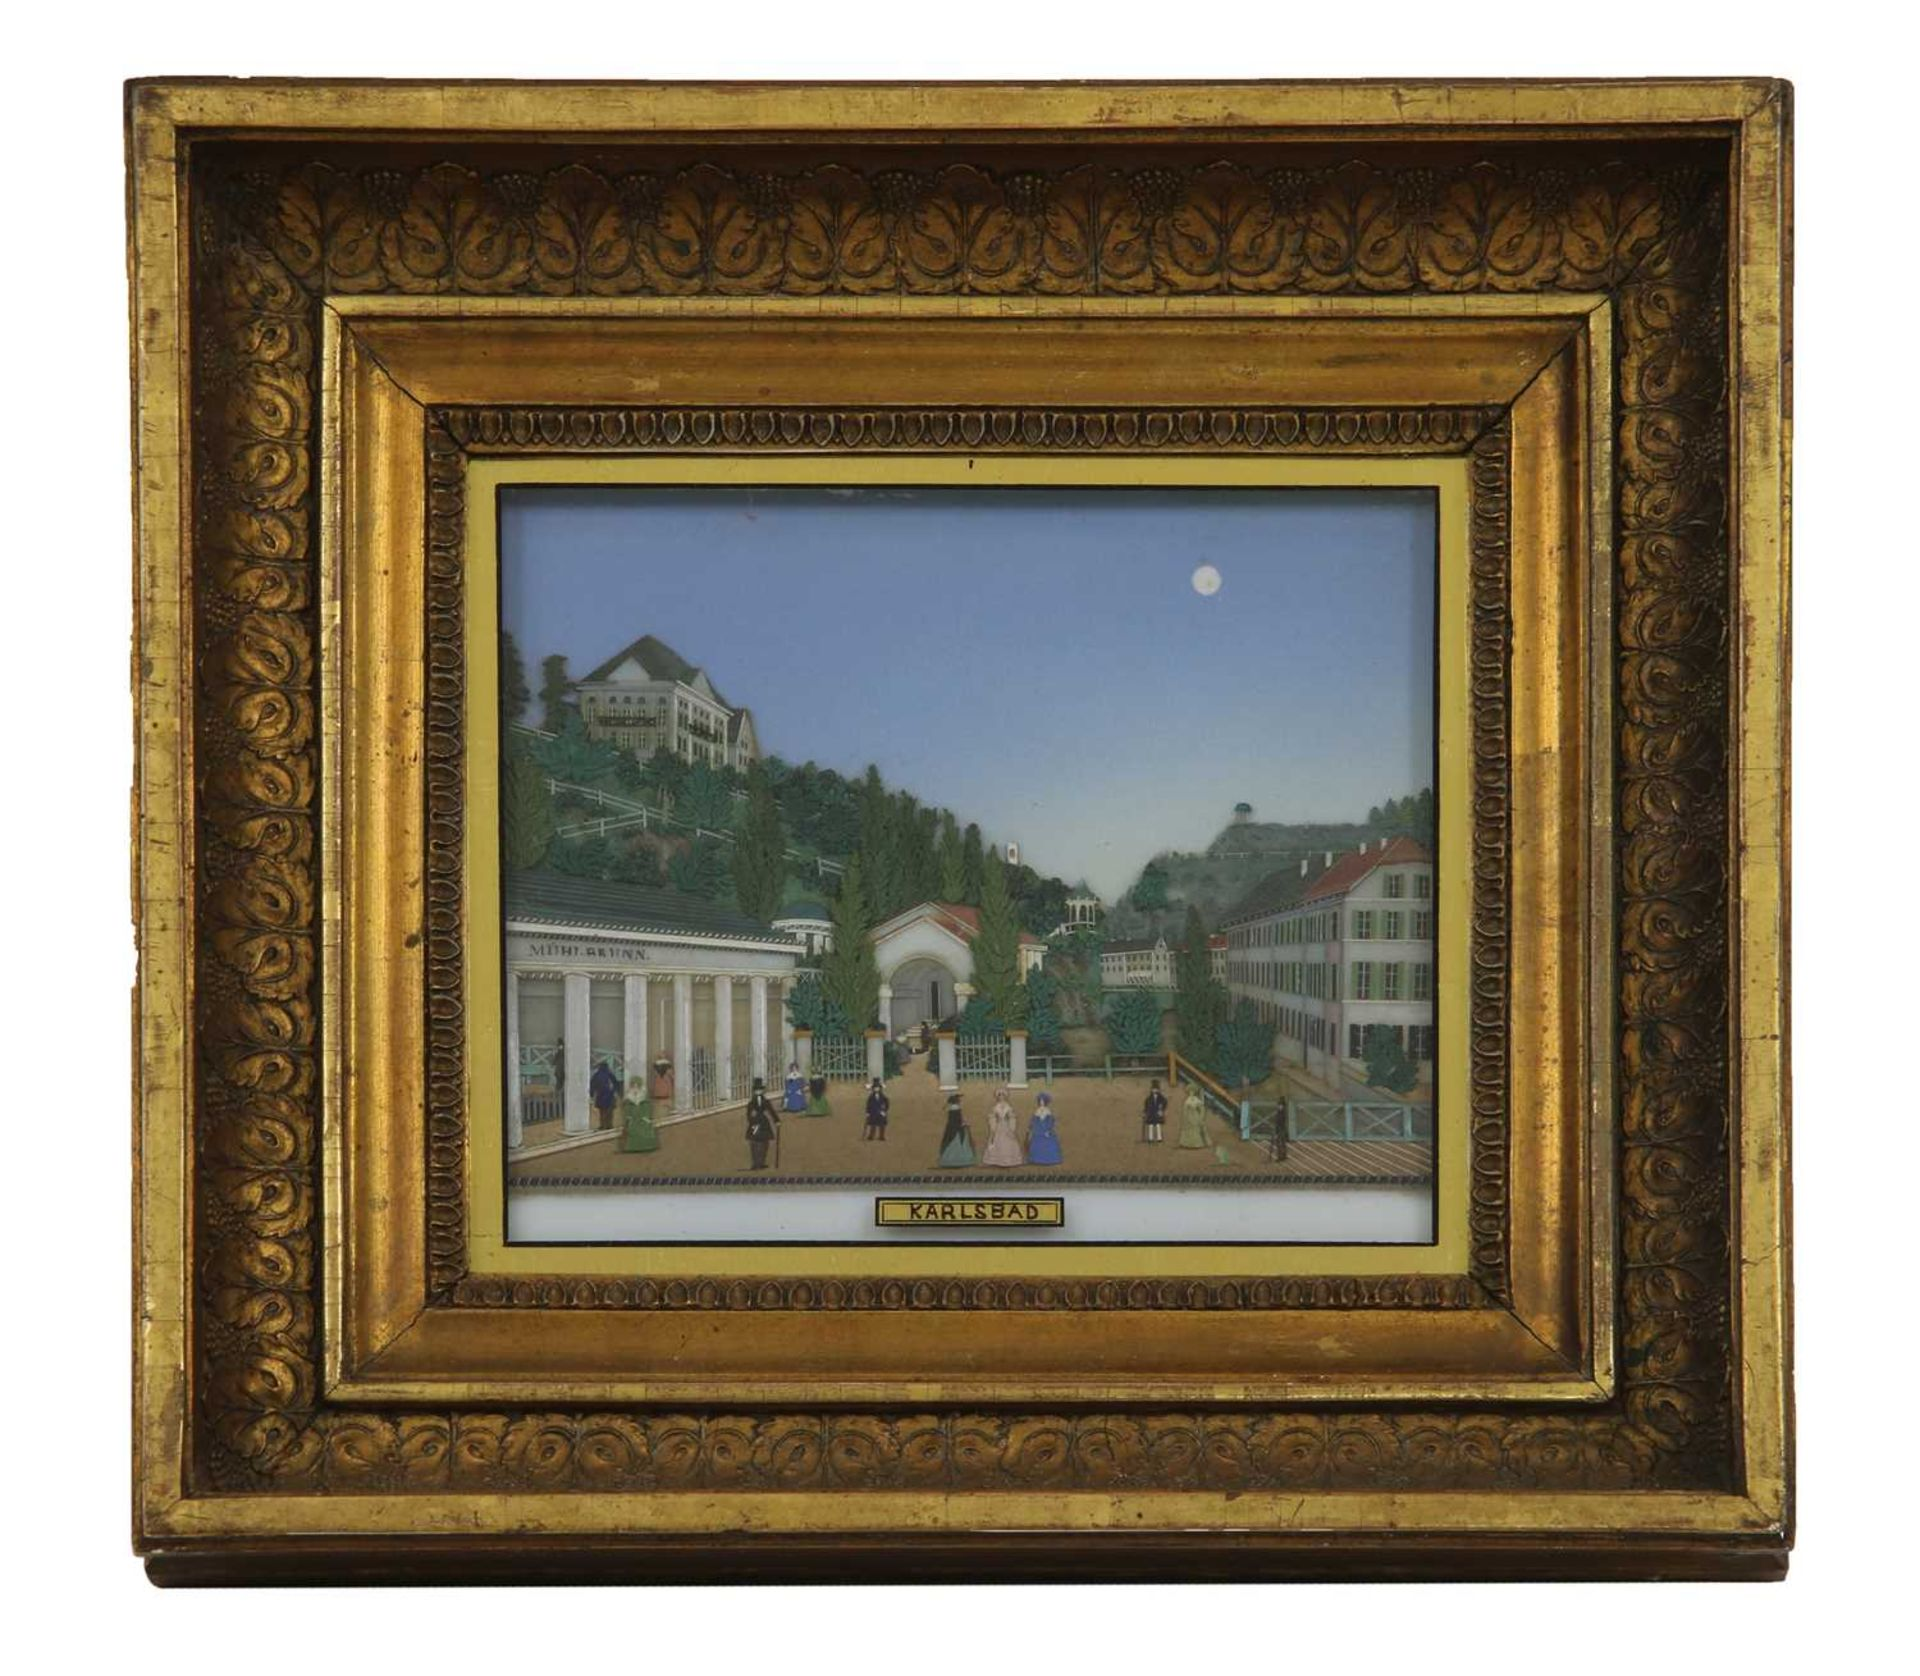 An unusual coloured glass collage titled 'Karlsbad',